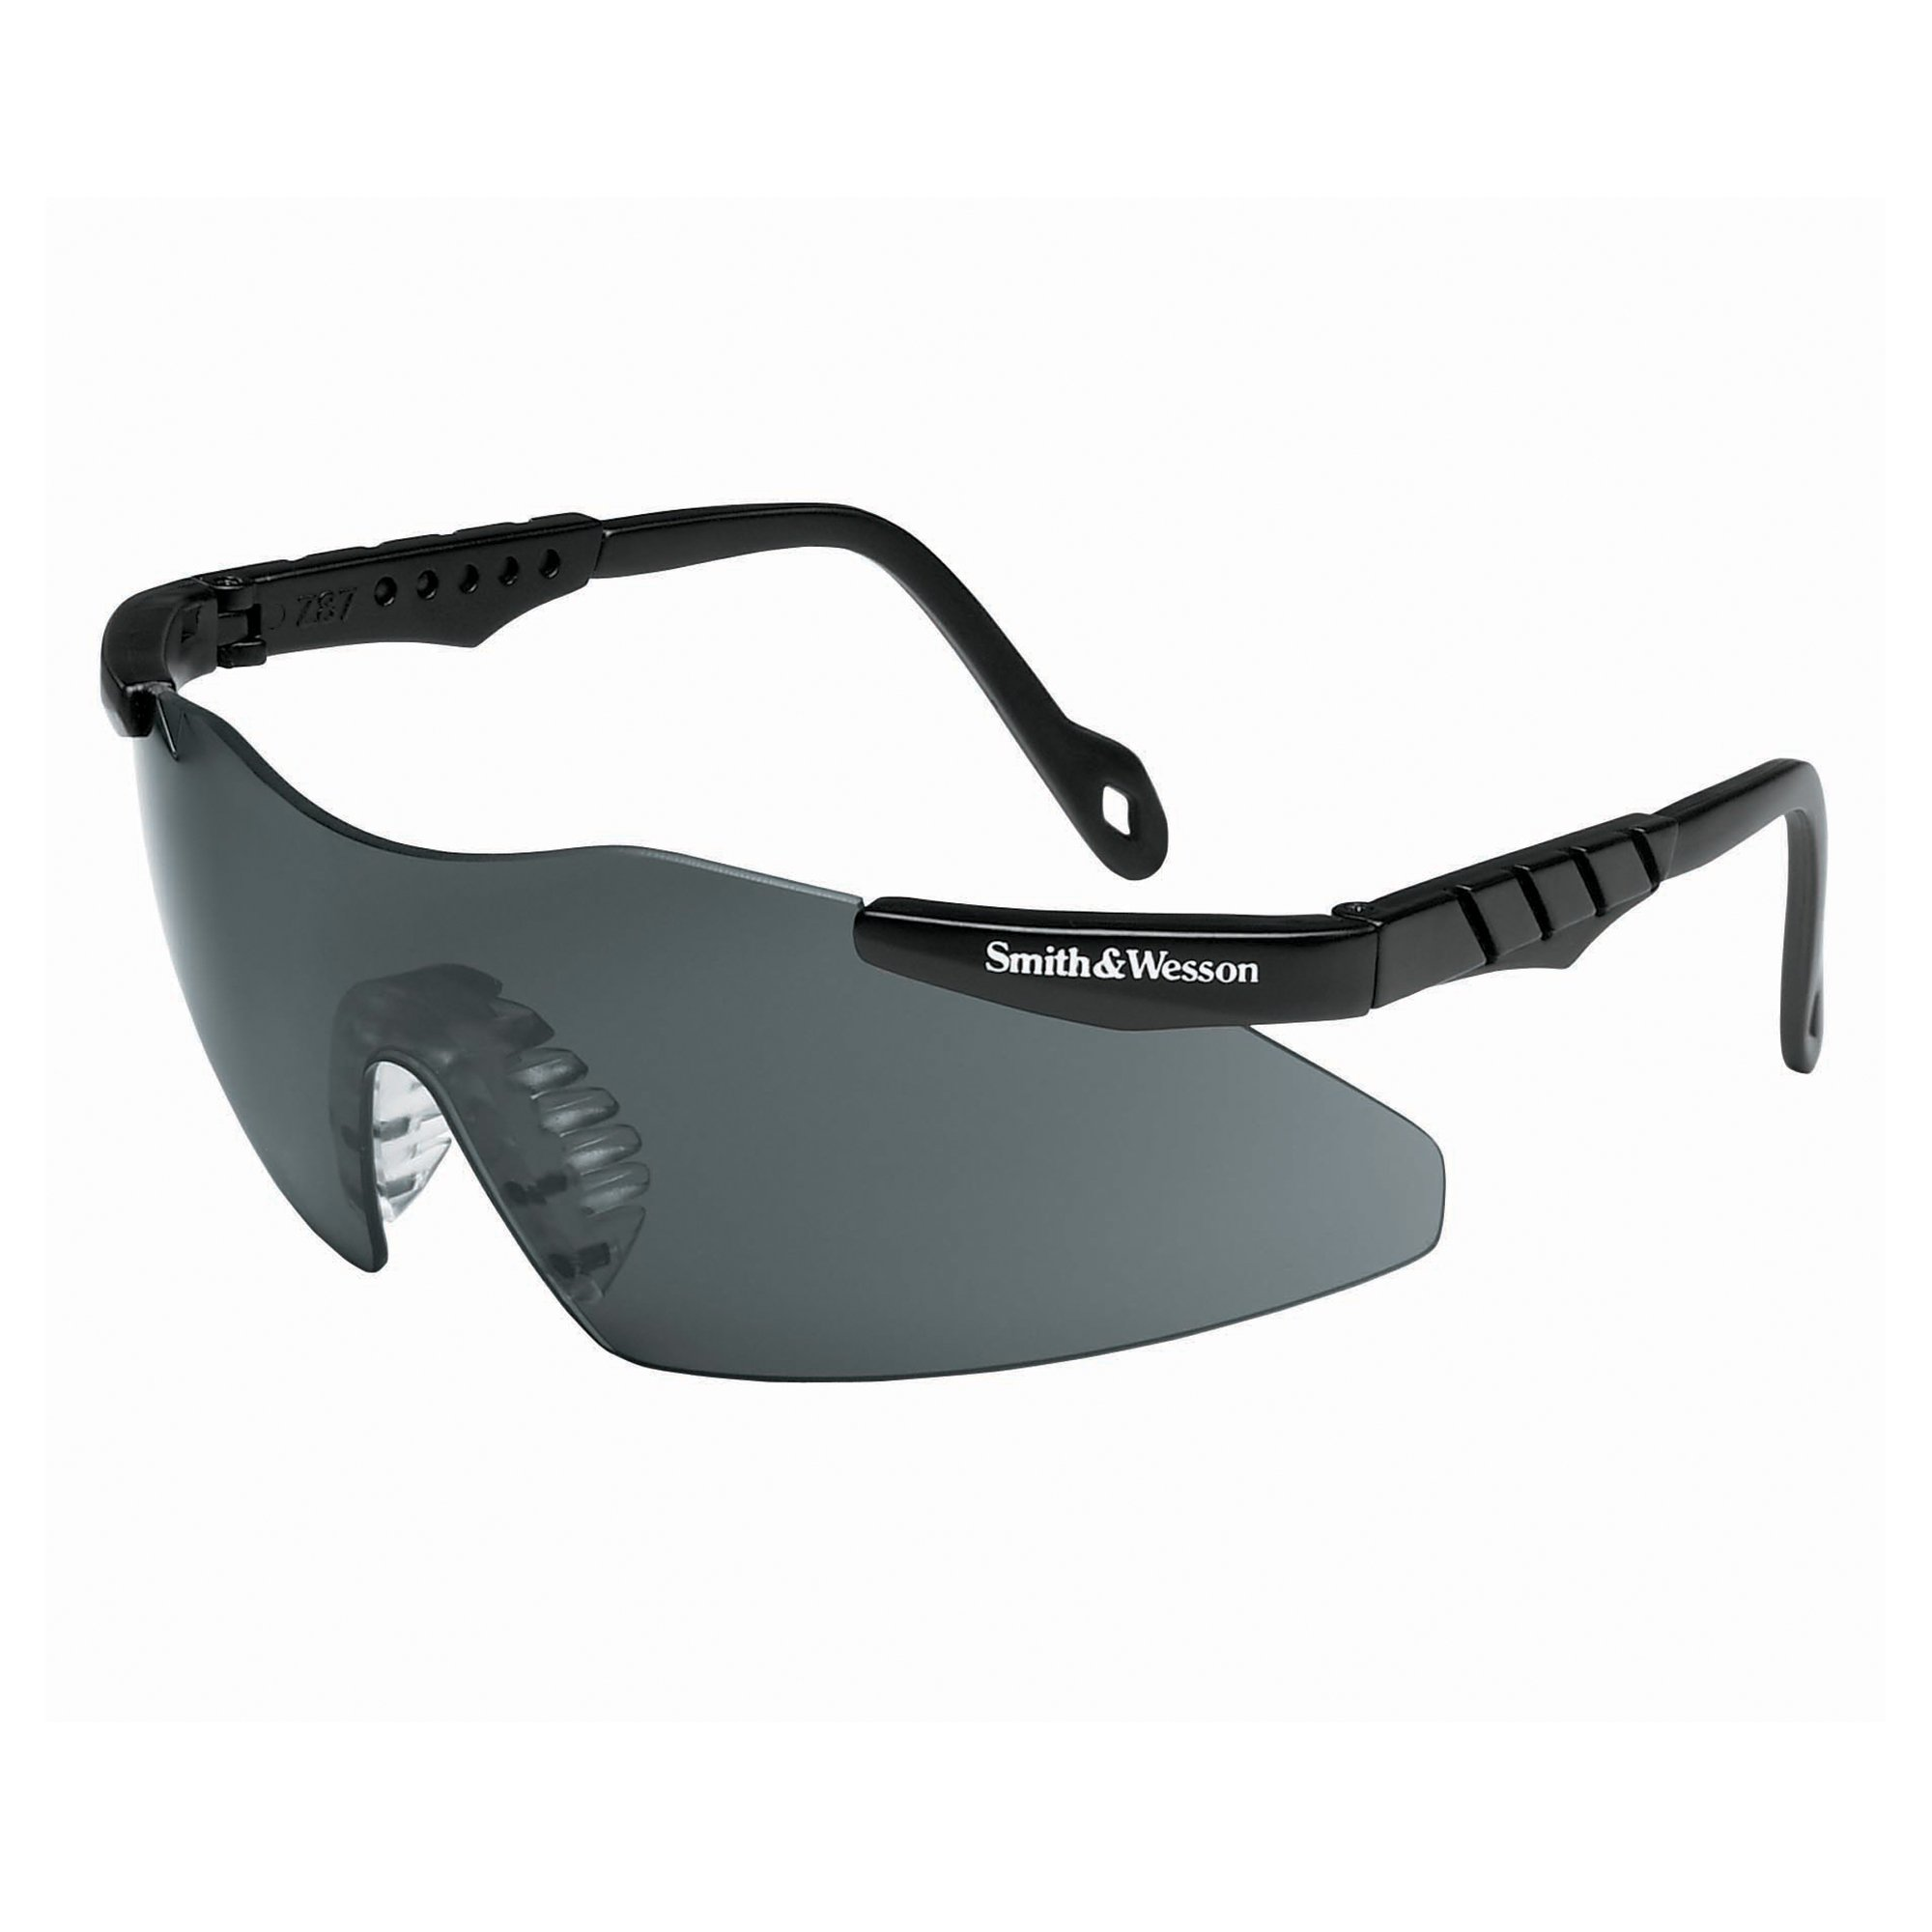 Smith & Wesson Magnum 3G Mini Safety Glasses (19824), Black Frame, Smoke Lens, 12 Pairs/Case